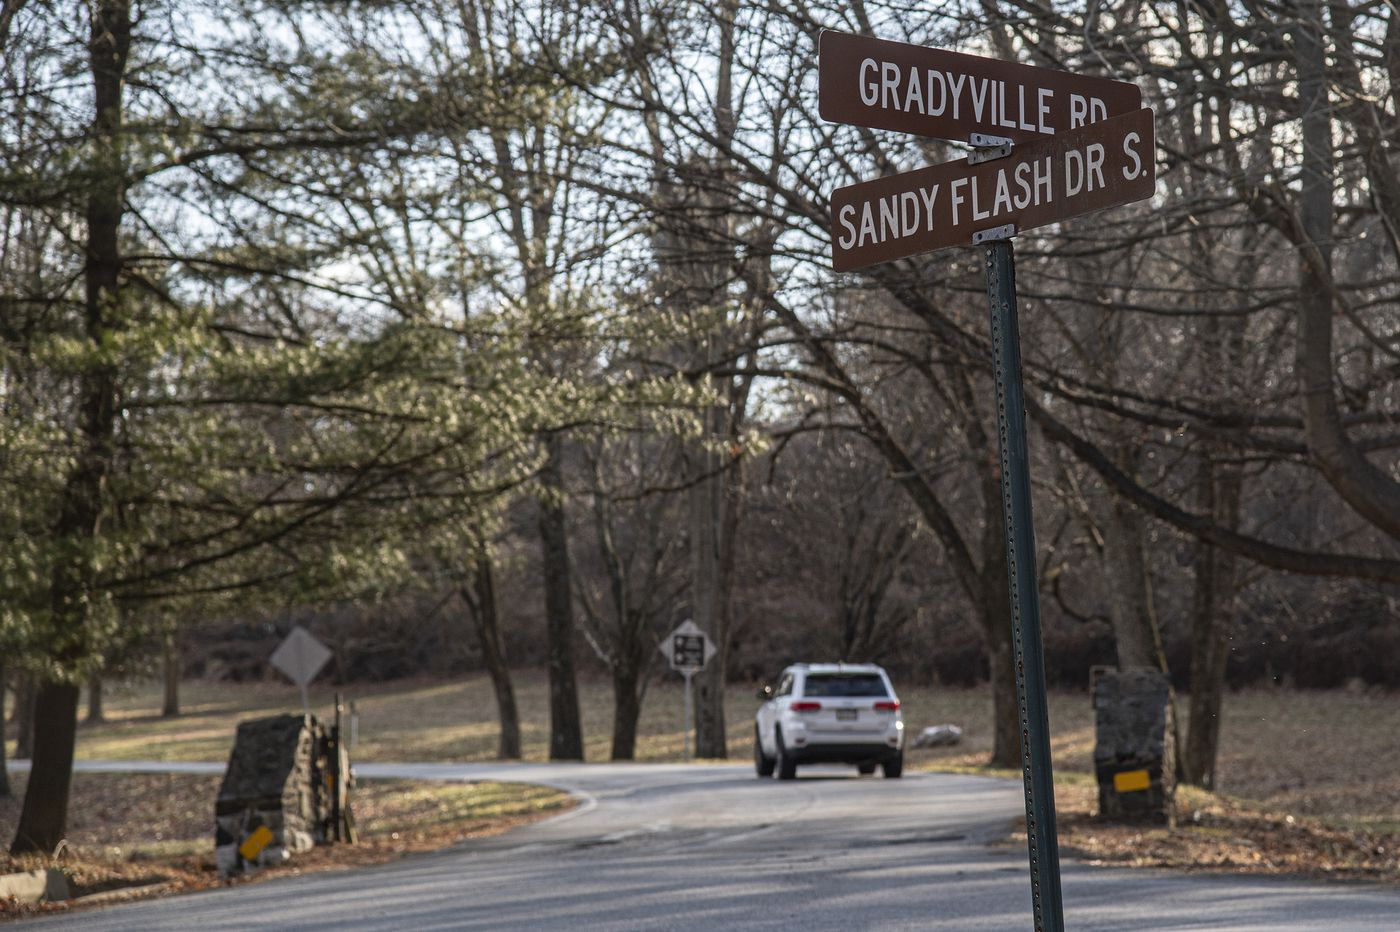 Ridley Creek State Park Street Named for Revolutionary War Traitor